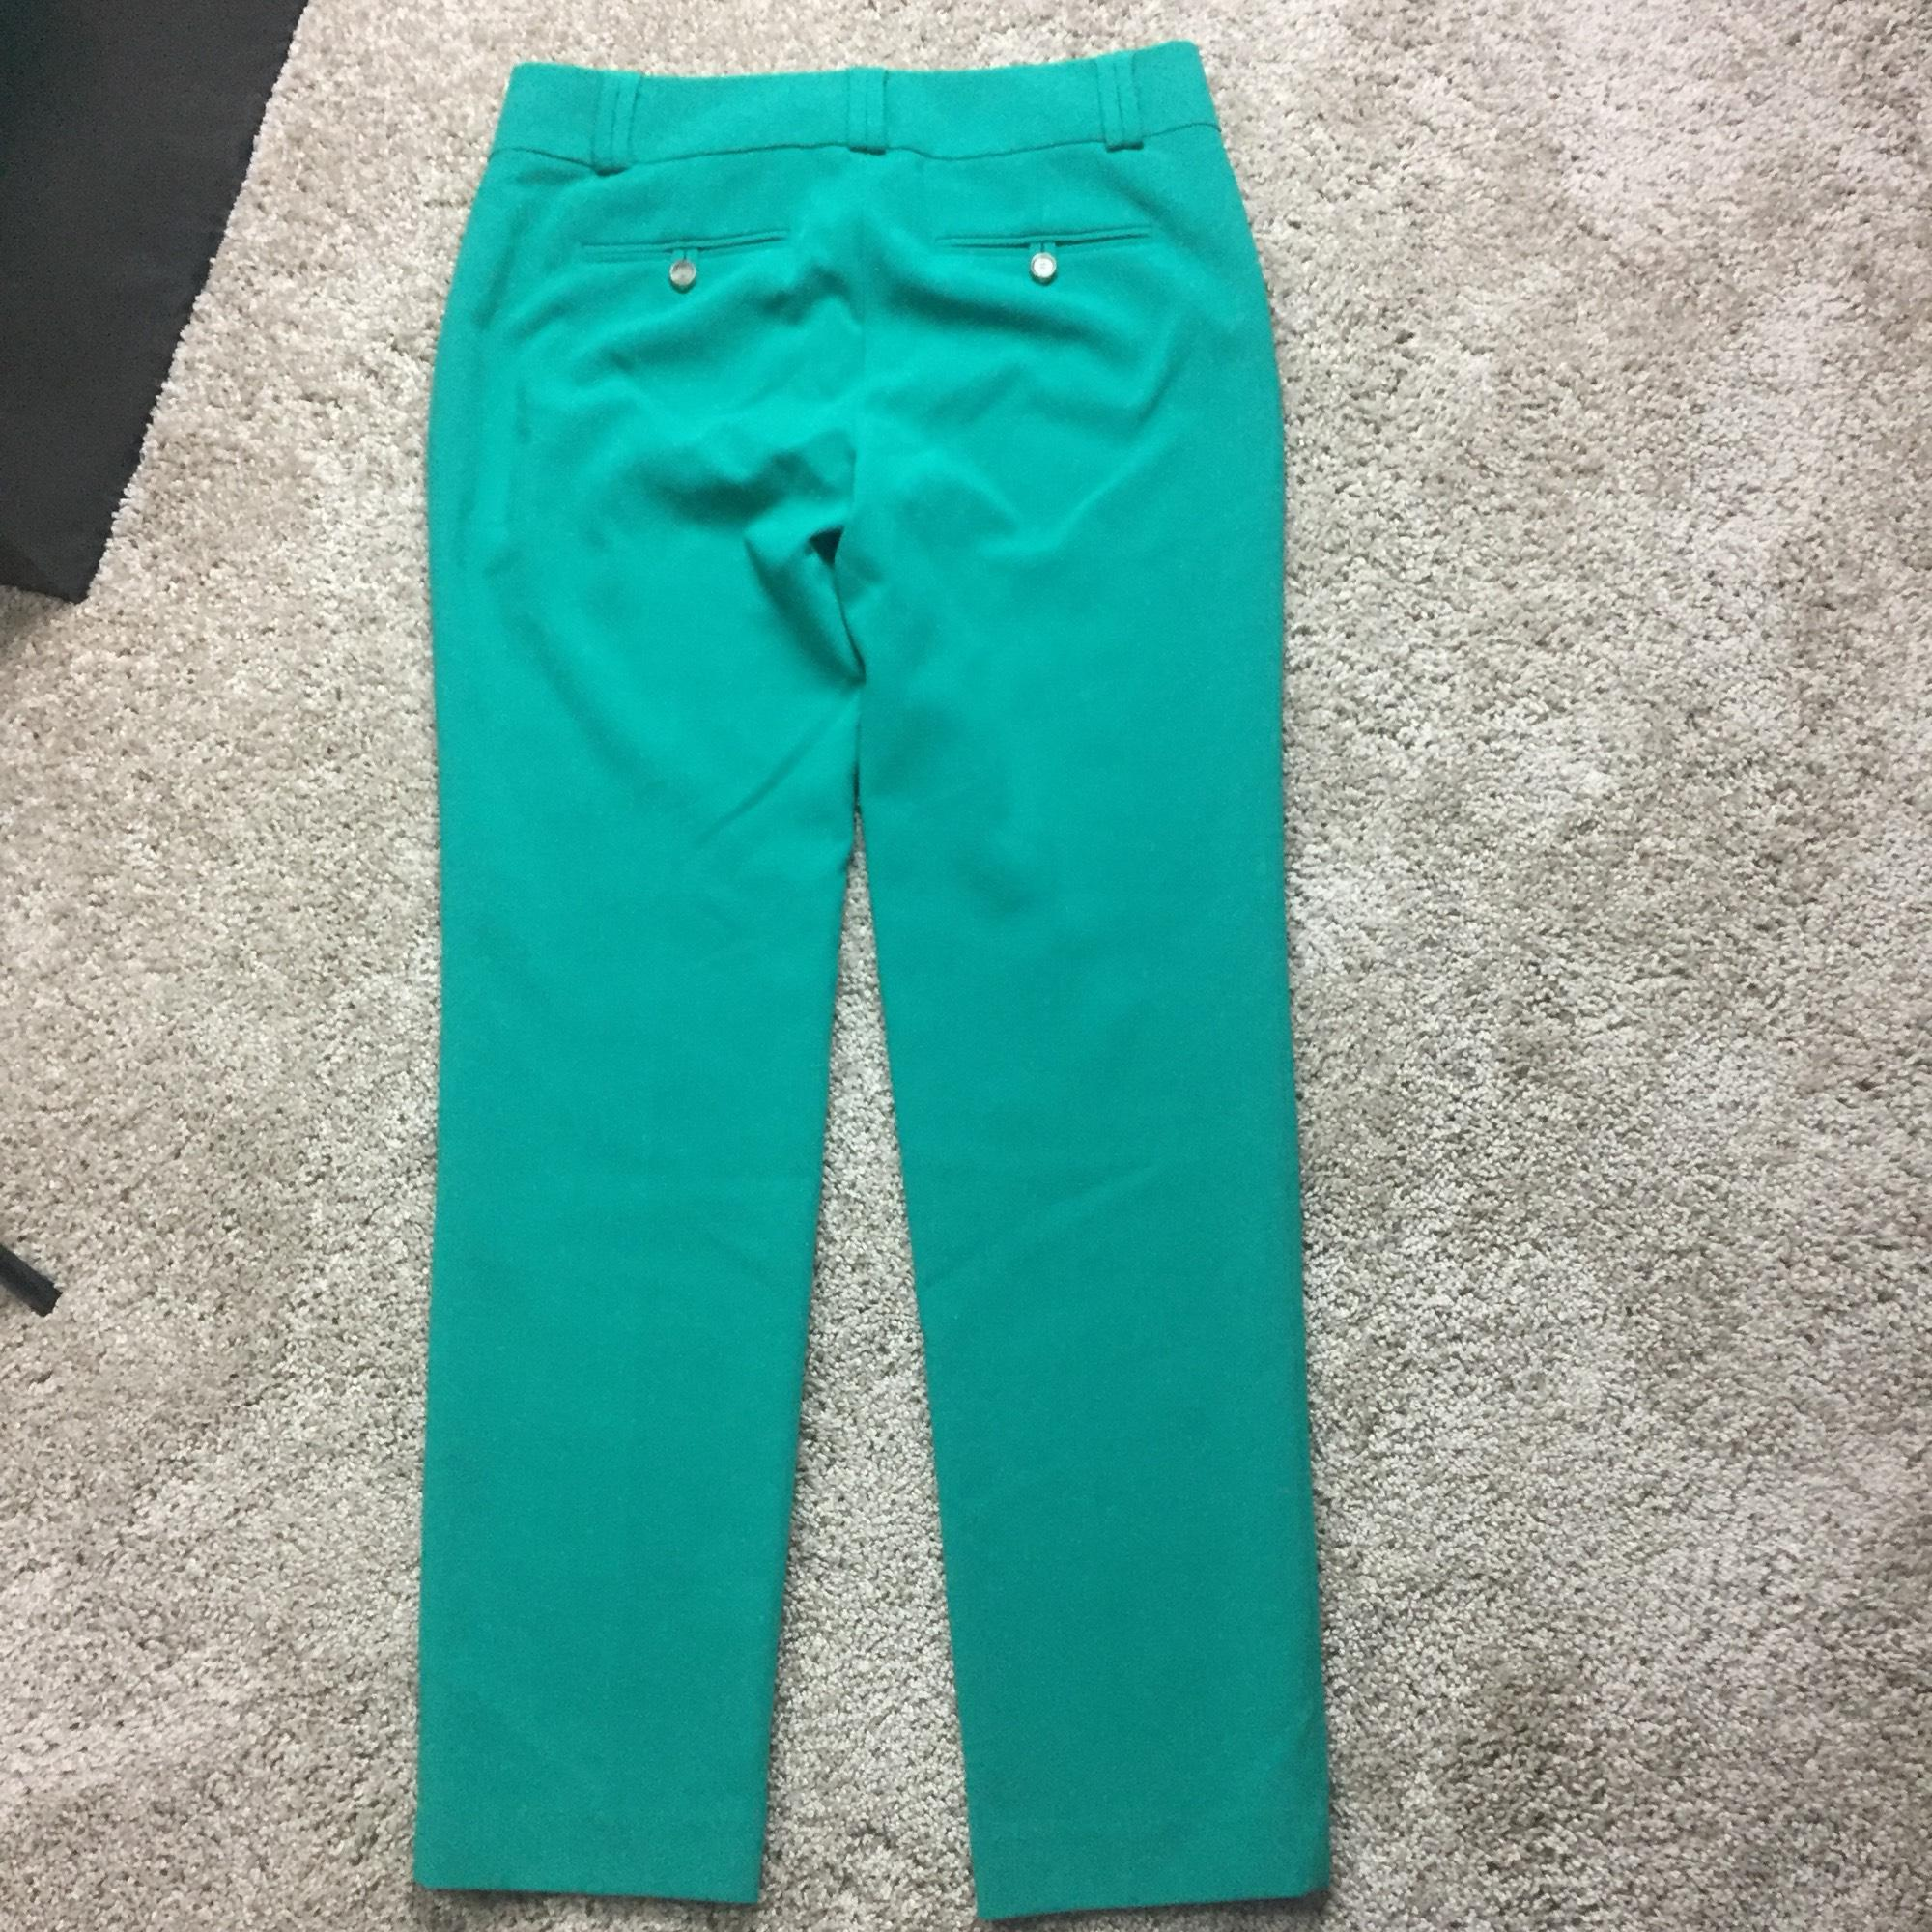 Loft Marisa Pants Review